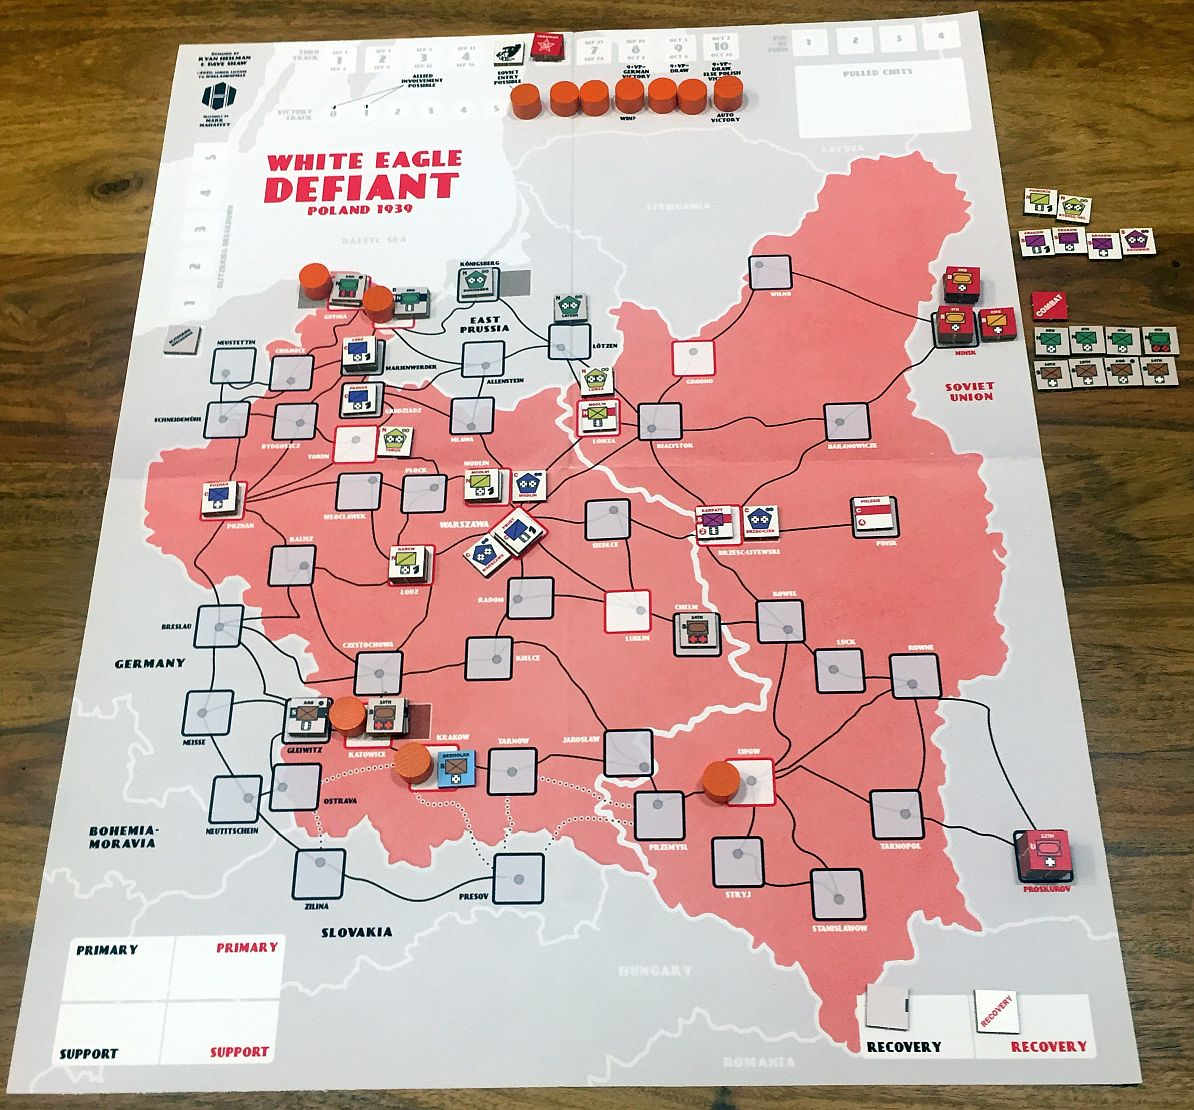 After TURN 5; VPs at 5. Katowice finally falls, Polish Central army is heading towards Gdynia and Danzig.